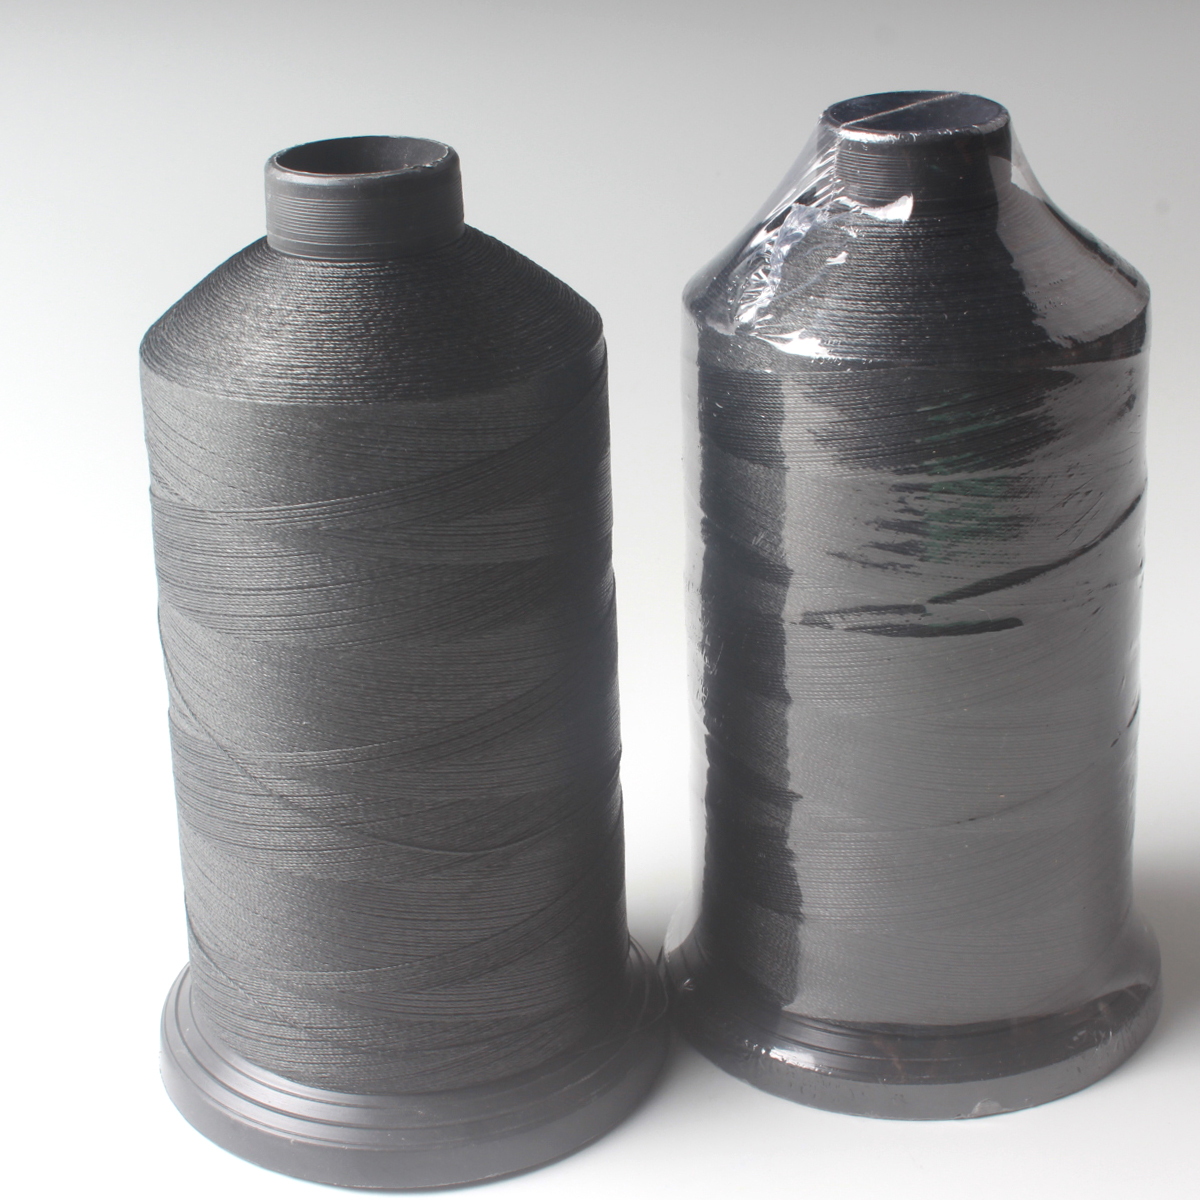 1kg/spool 400D/3weave 0.40mm 28kg Braid UHMWPE Sewing Thread for webbing/strap/fabric/cloth/bag/garment